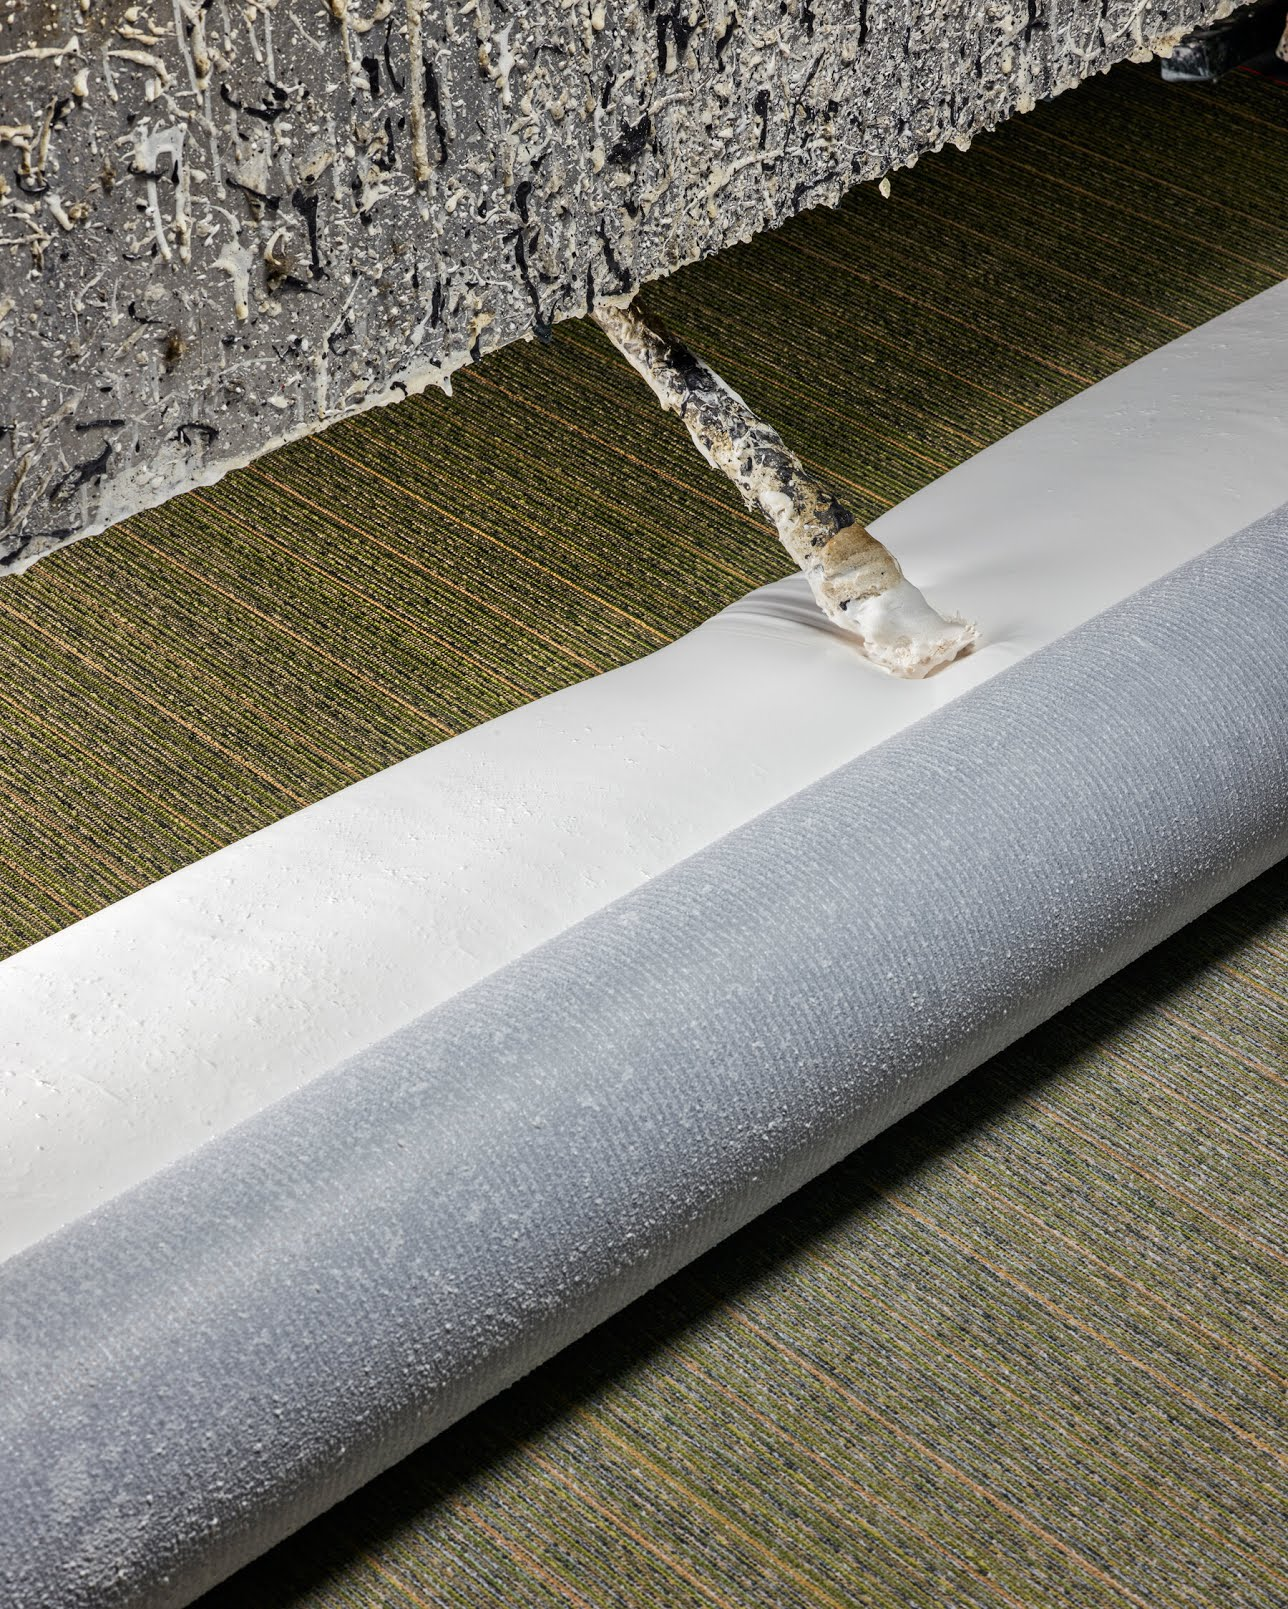 Adding latex created from smokestack exhaust to the tufted carpet.